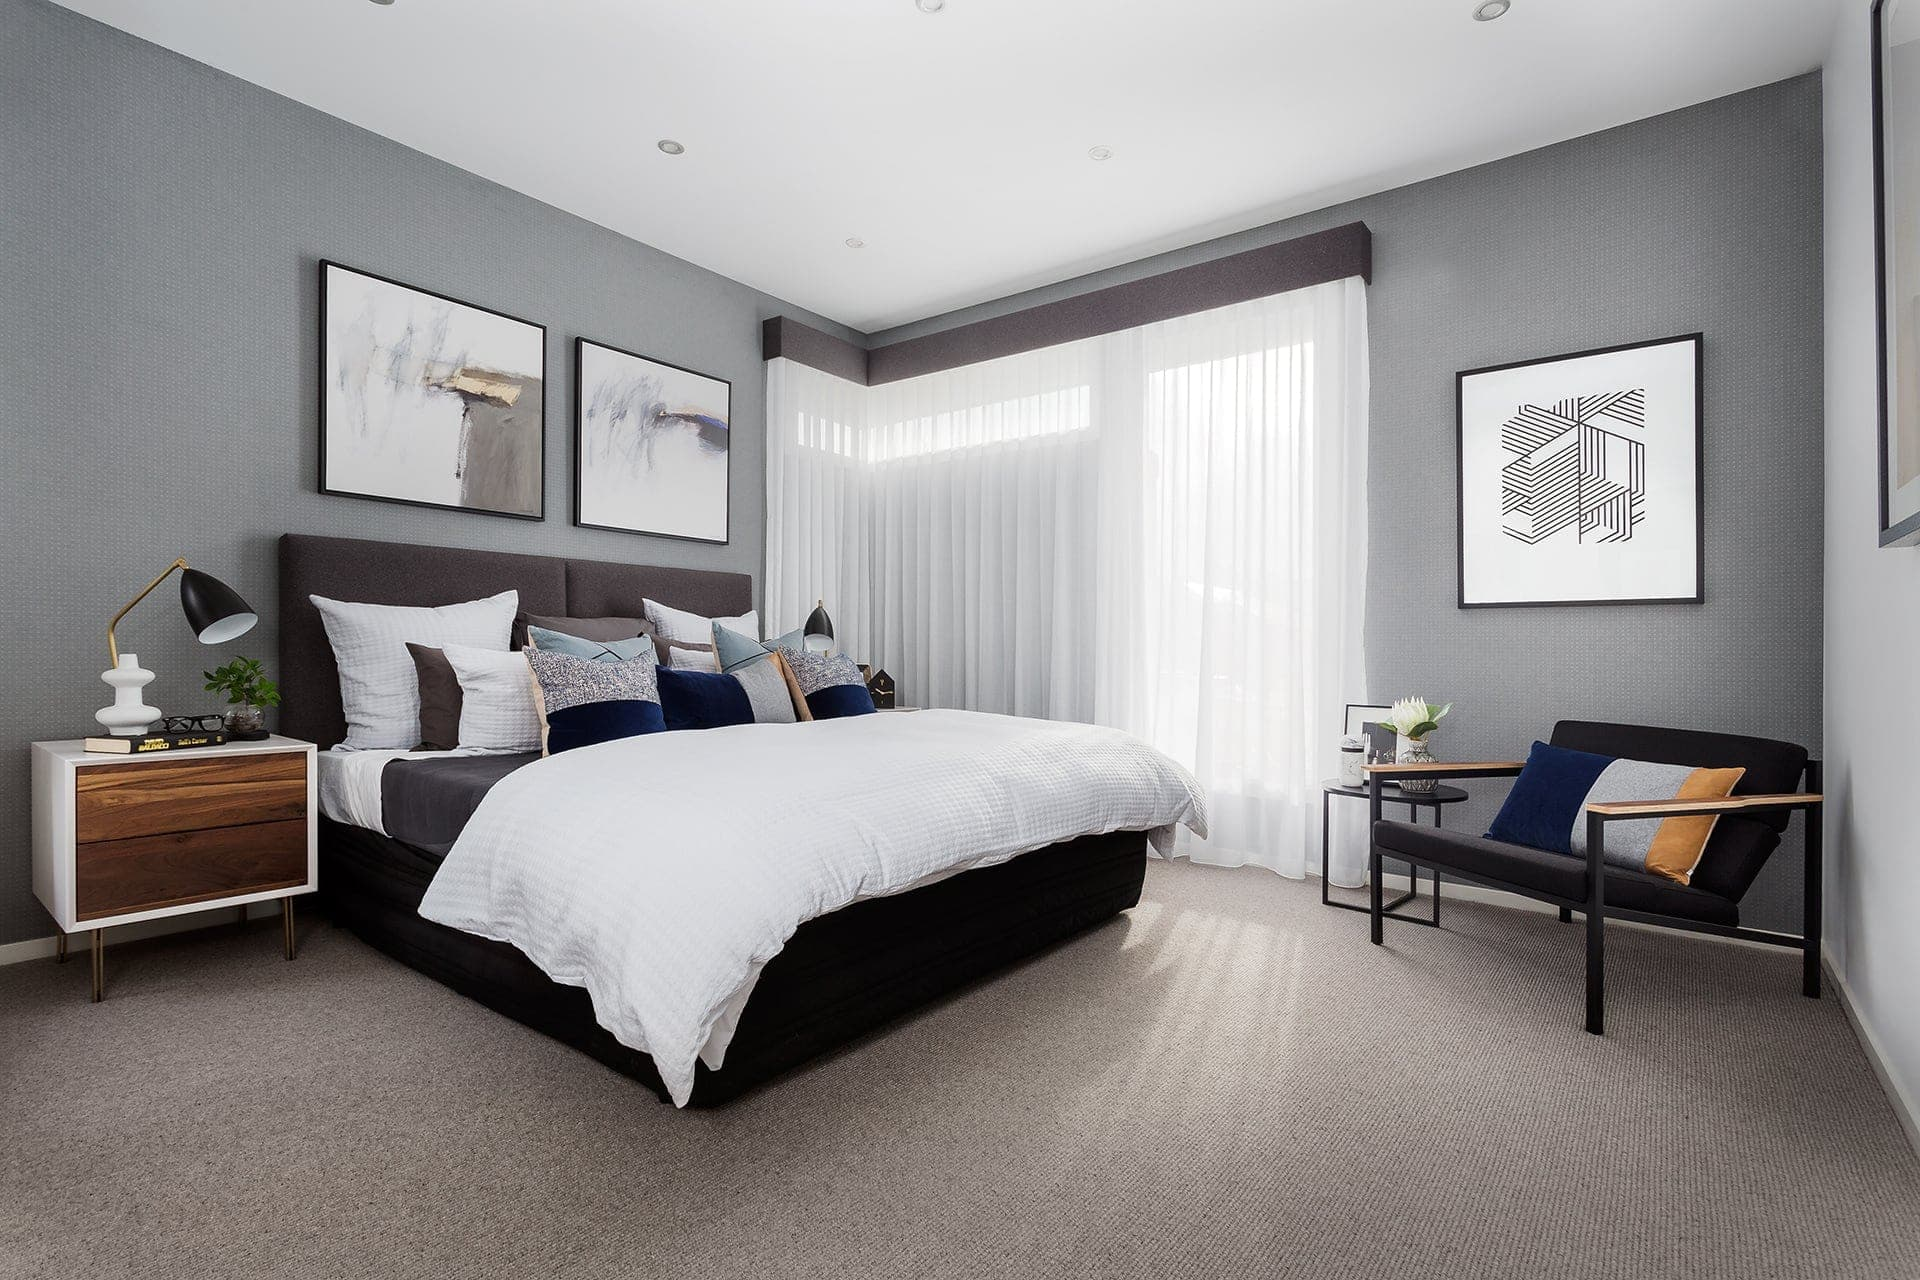 master bedroom with olive polka dot wallpaper and black armchair in corner from metricon